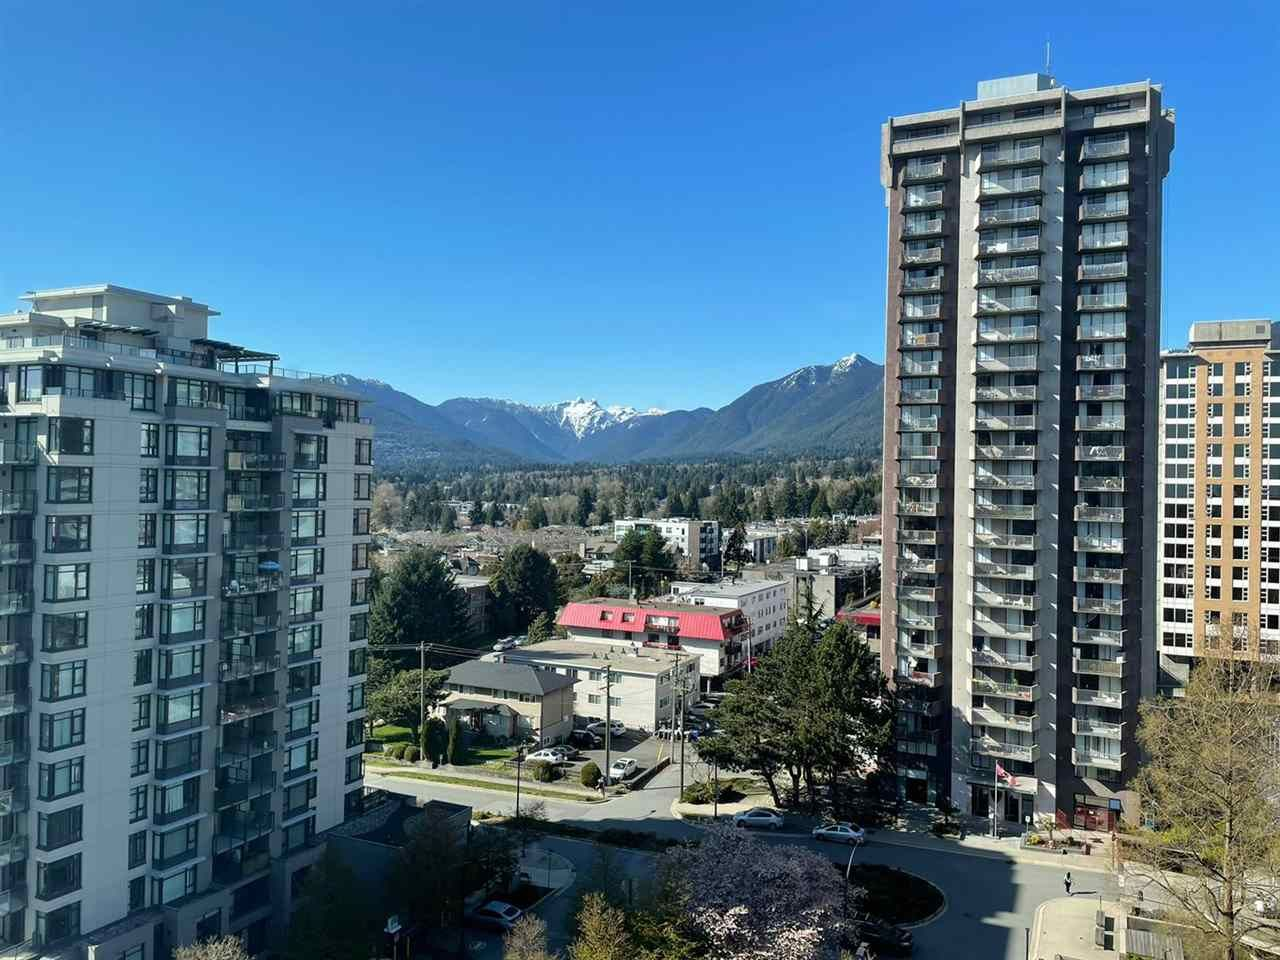 """Main Photo: 1202 158 W 13TH Street in North Vancouver: Central Lonsdale Condo for sale in """"Vista Place"""" : MLS®# R2588357"""